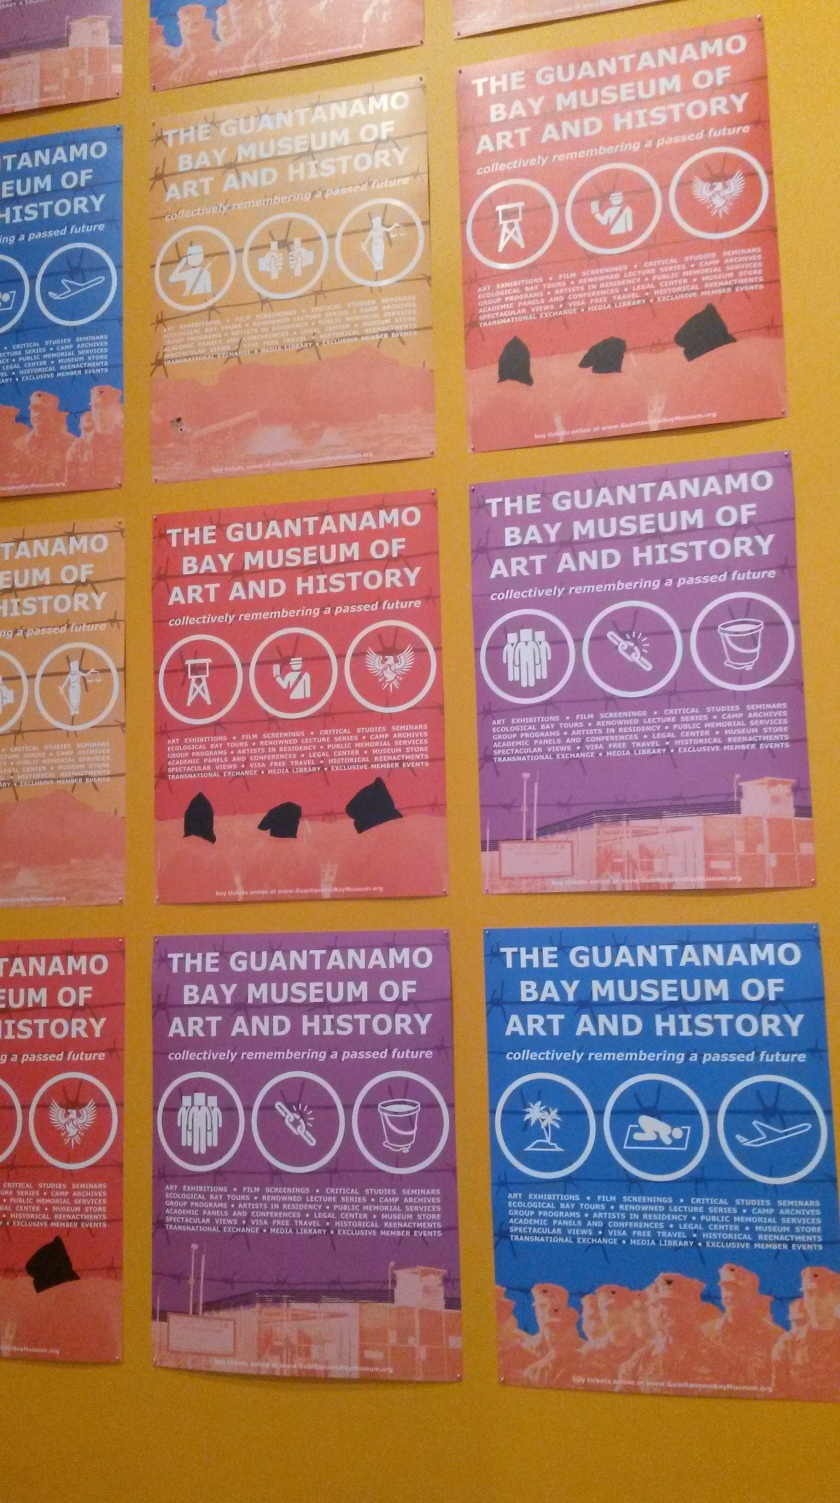 The Guantanamo Bay Museum of Art and History, http://www.guantanamobaymuseum.org/?url=welcome